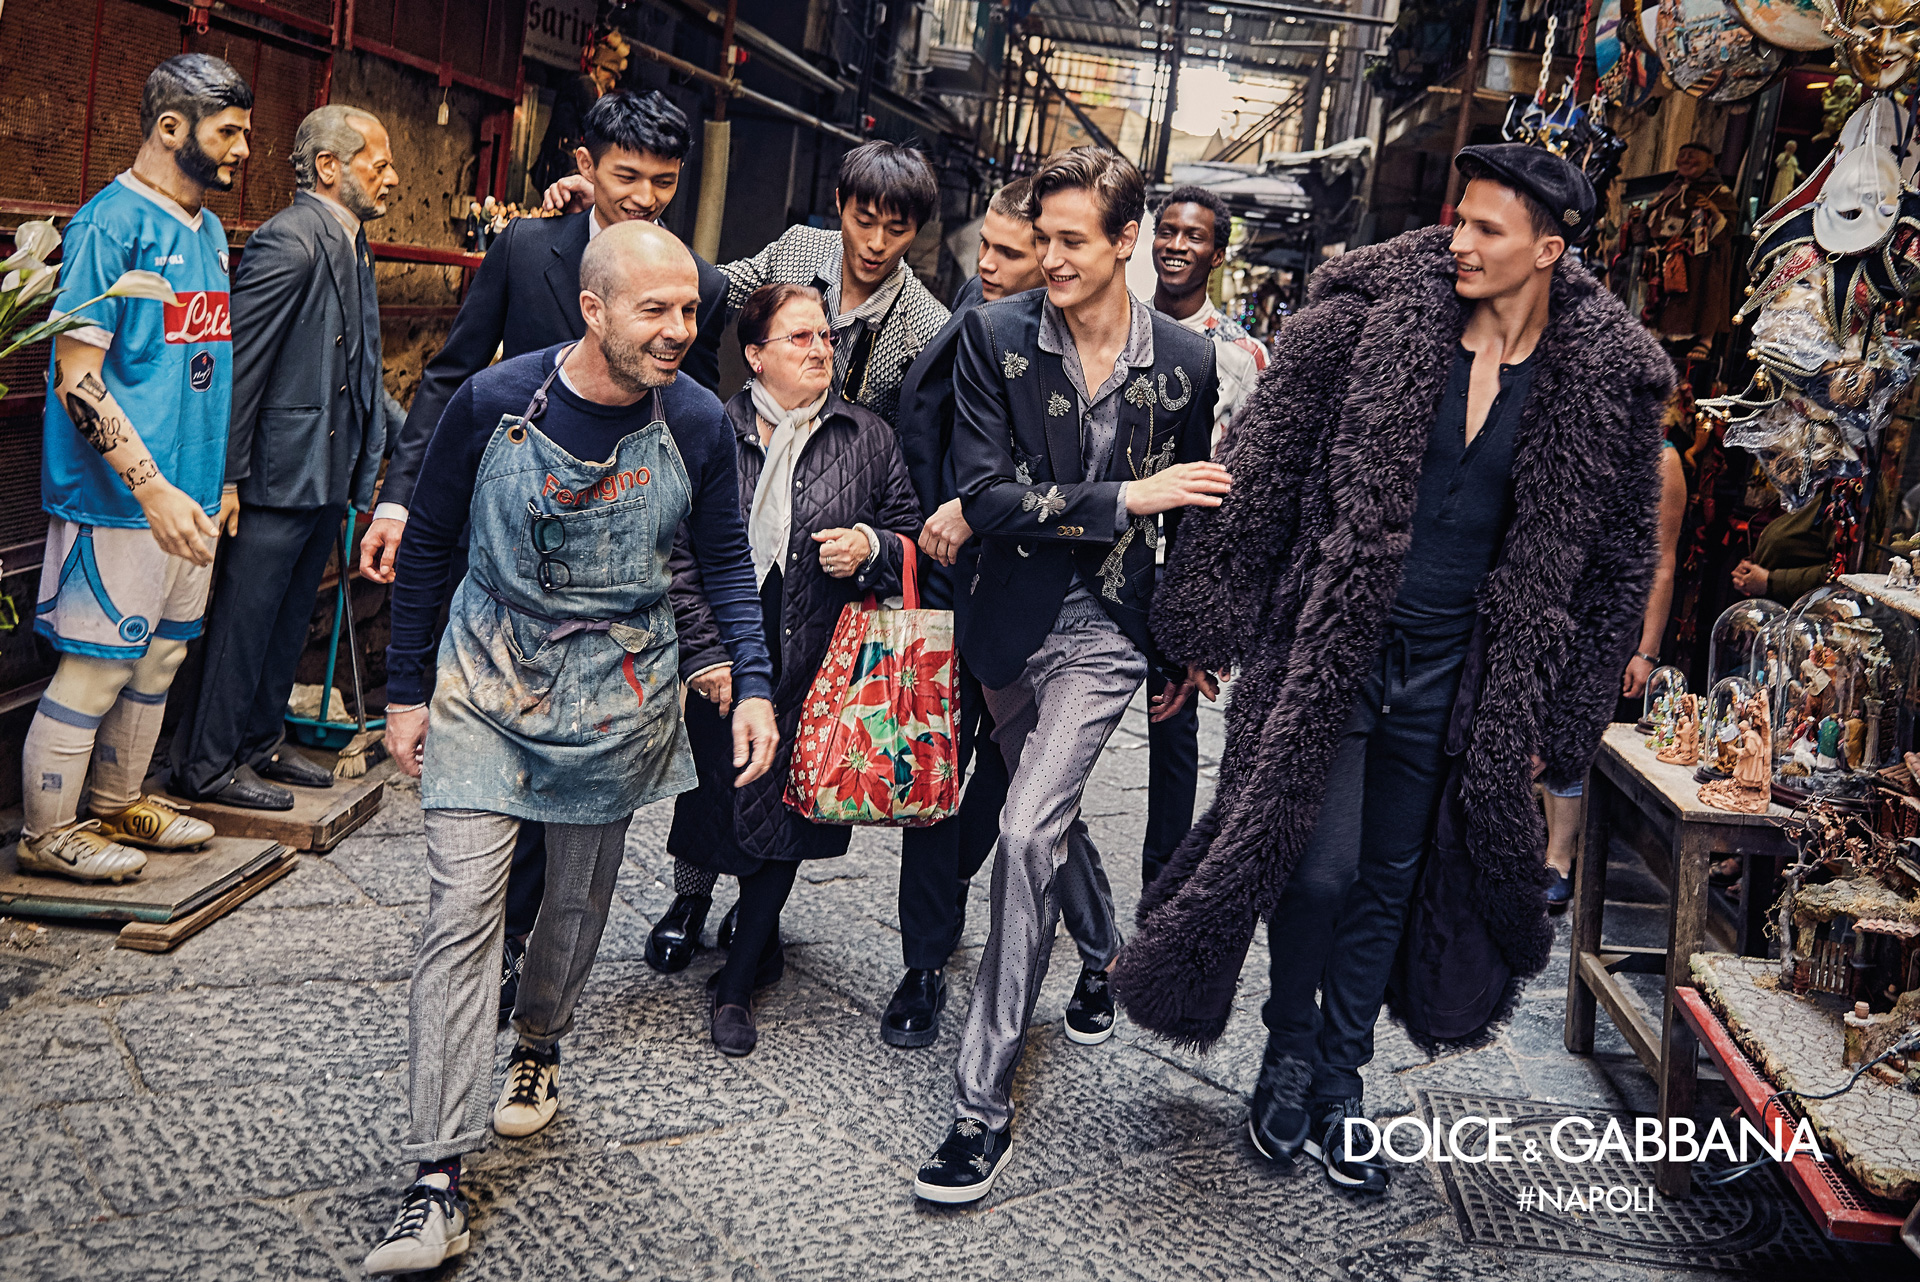 http://www.dolcegabbana.com/man/advertising-campaign/